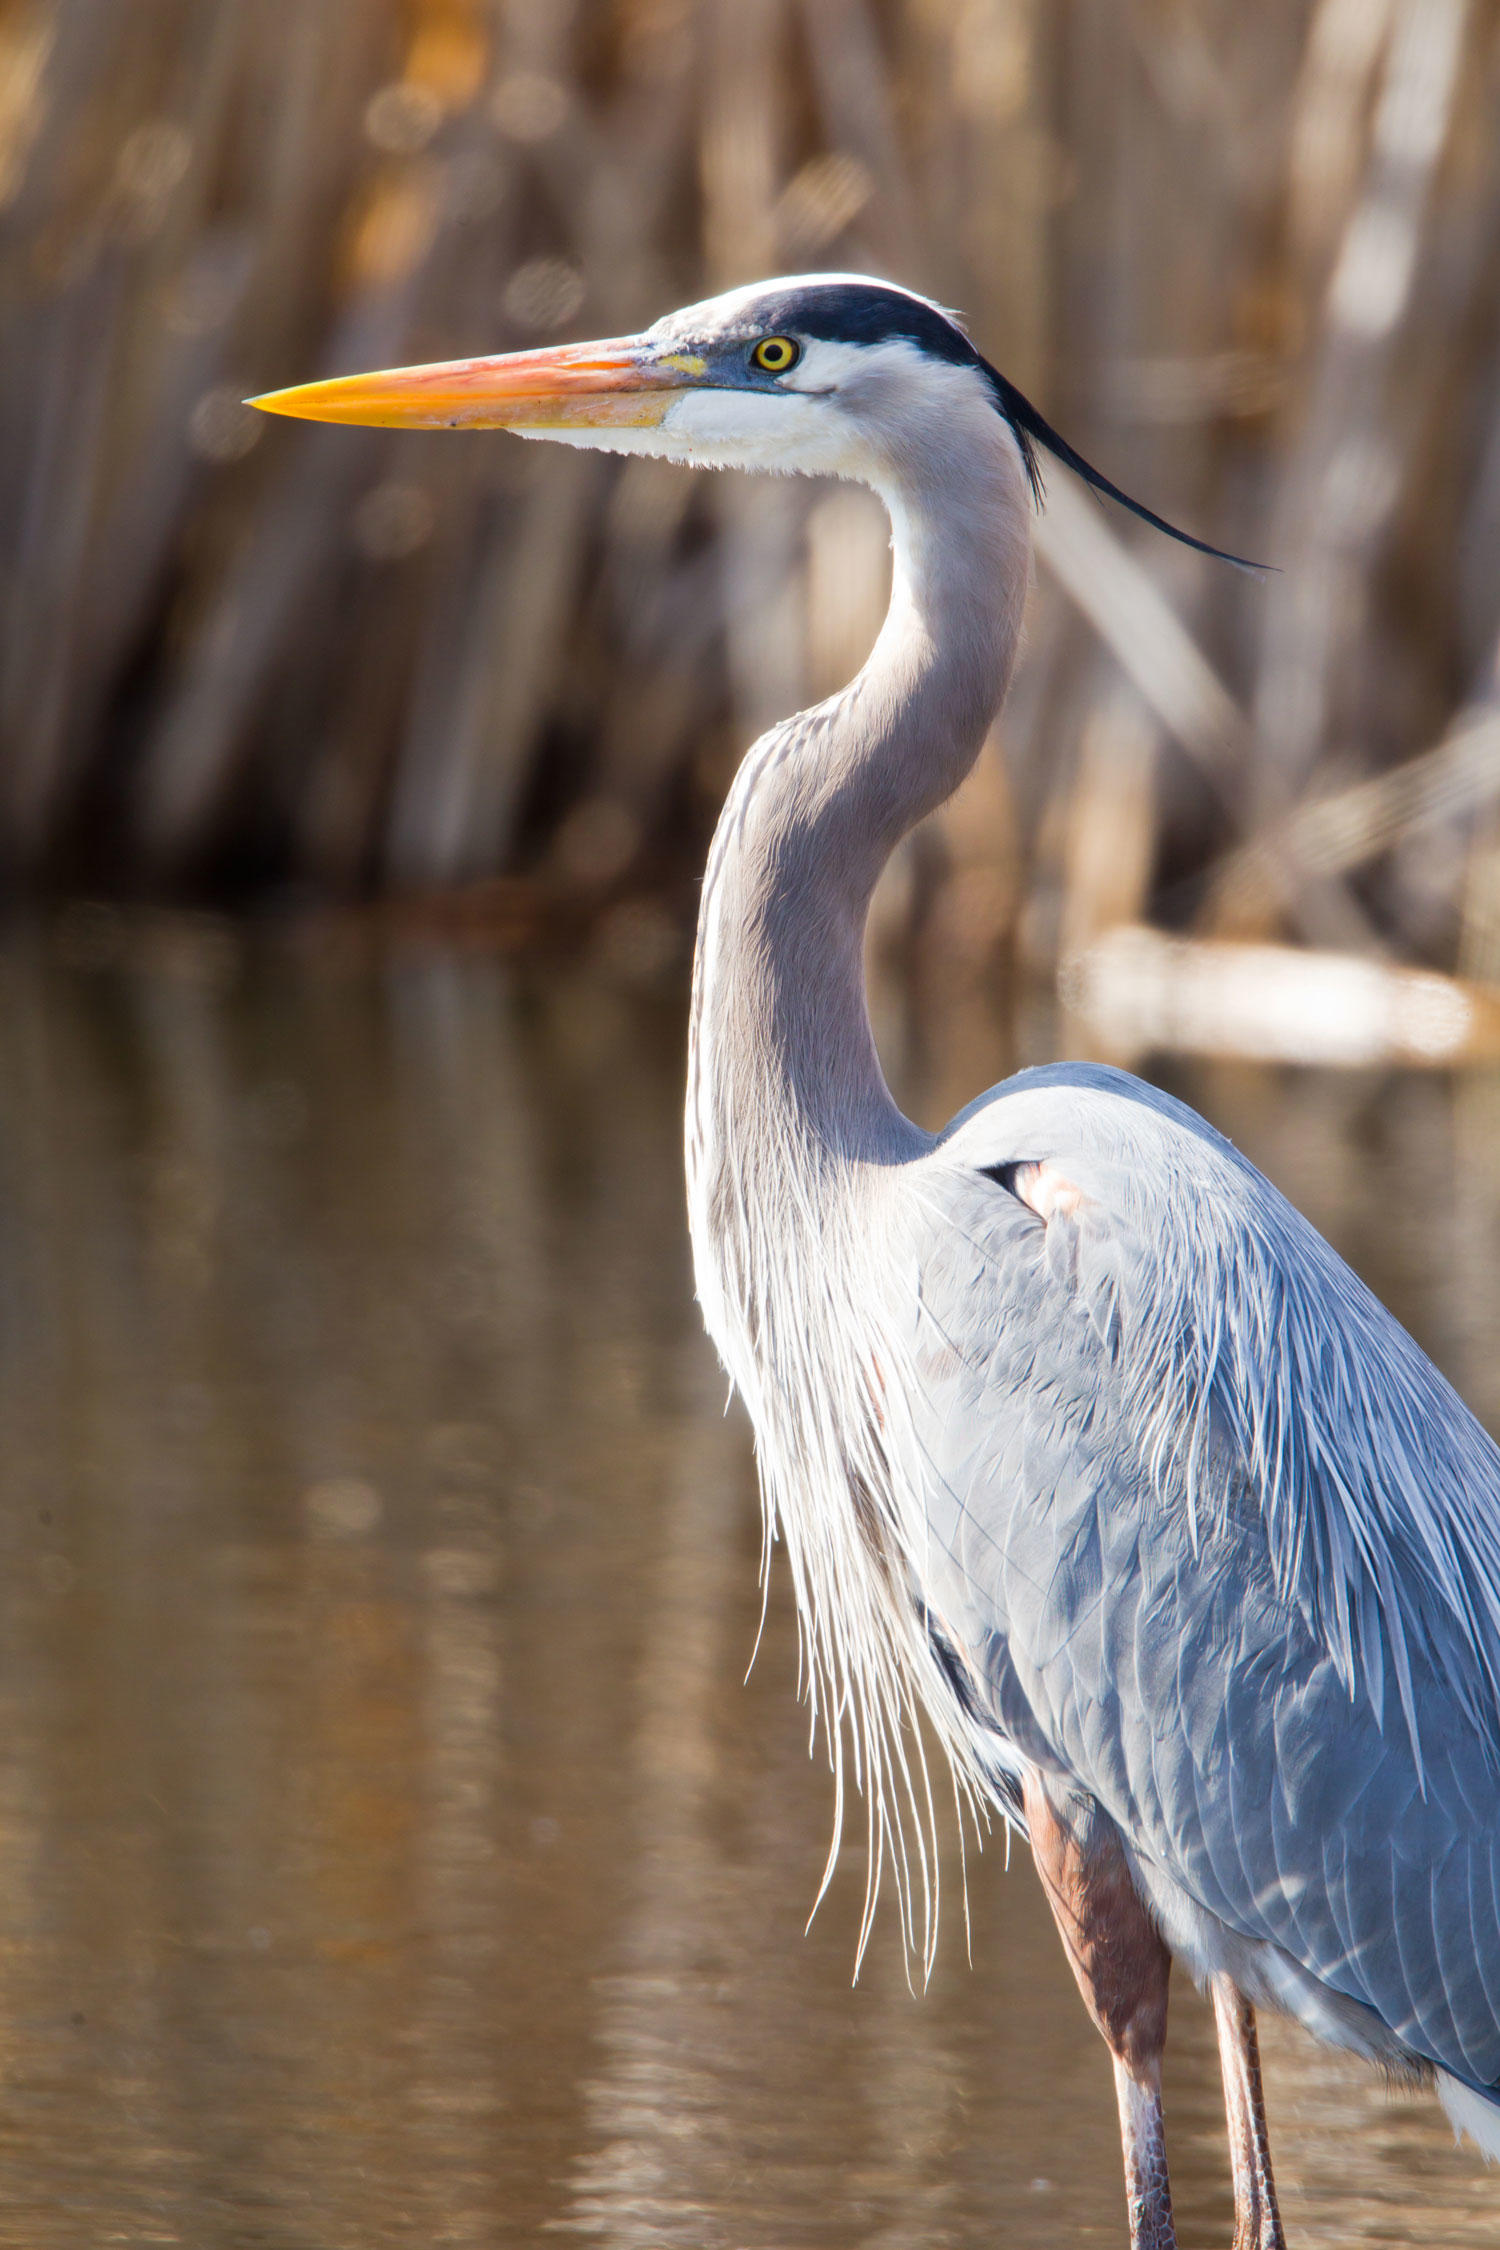 Image Galleries For Lionaid Campaigns: Great Blue Heron